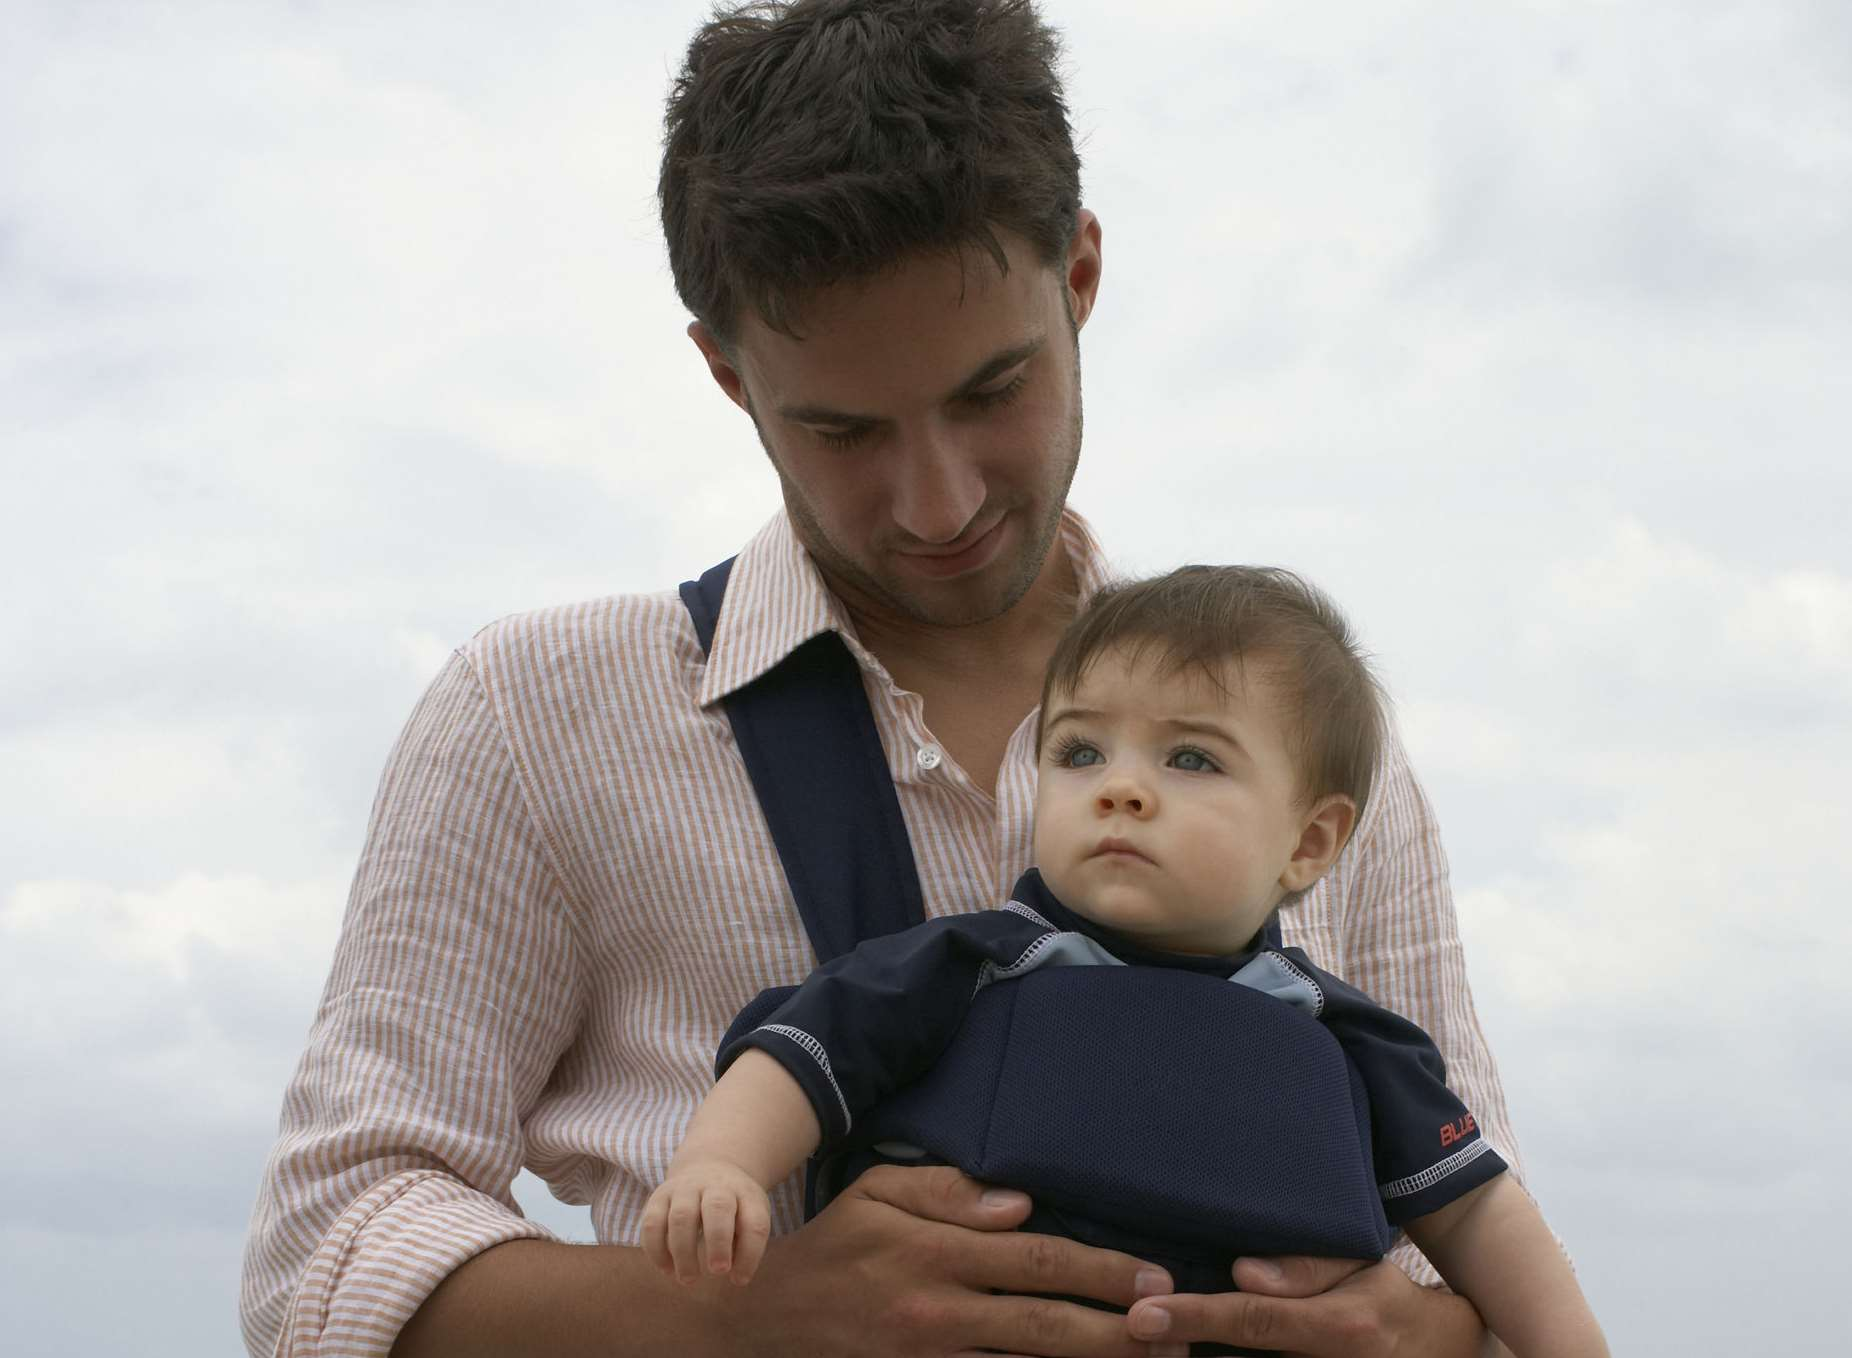 Carrying the baby or wearing it in a sling is one on the foundations of attachment parenting thinking